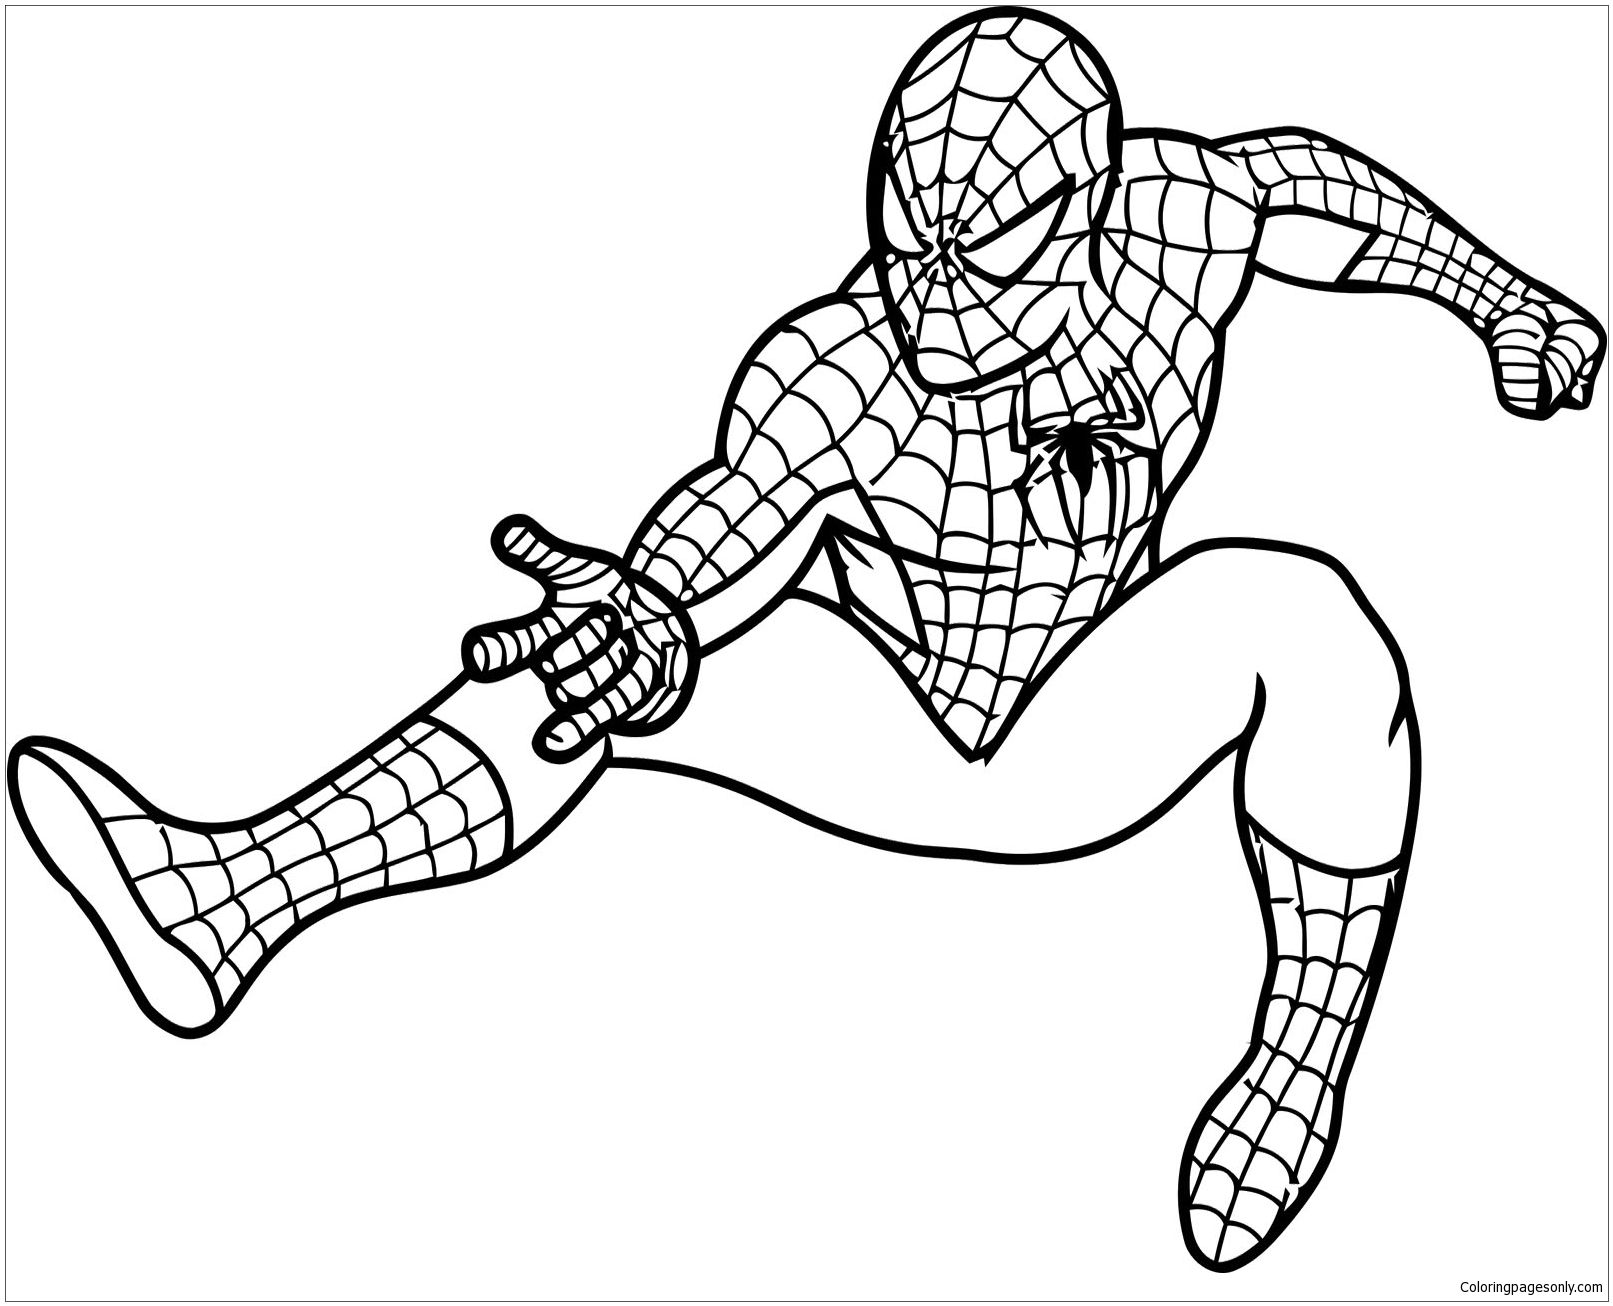 Epic Spider Man Coloring Page Turtle Coloring Pages Lego Coloring Pages Superhero Coloring Pages